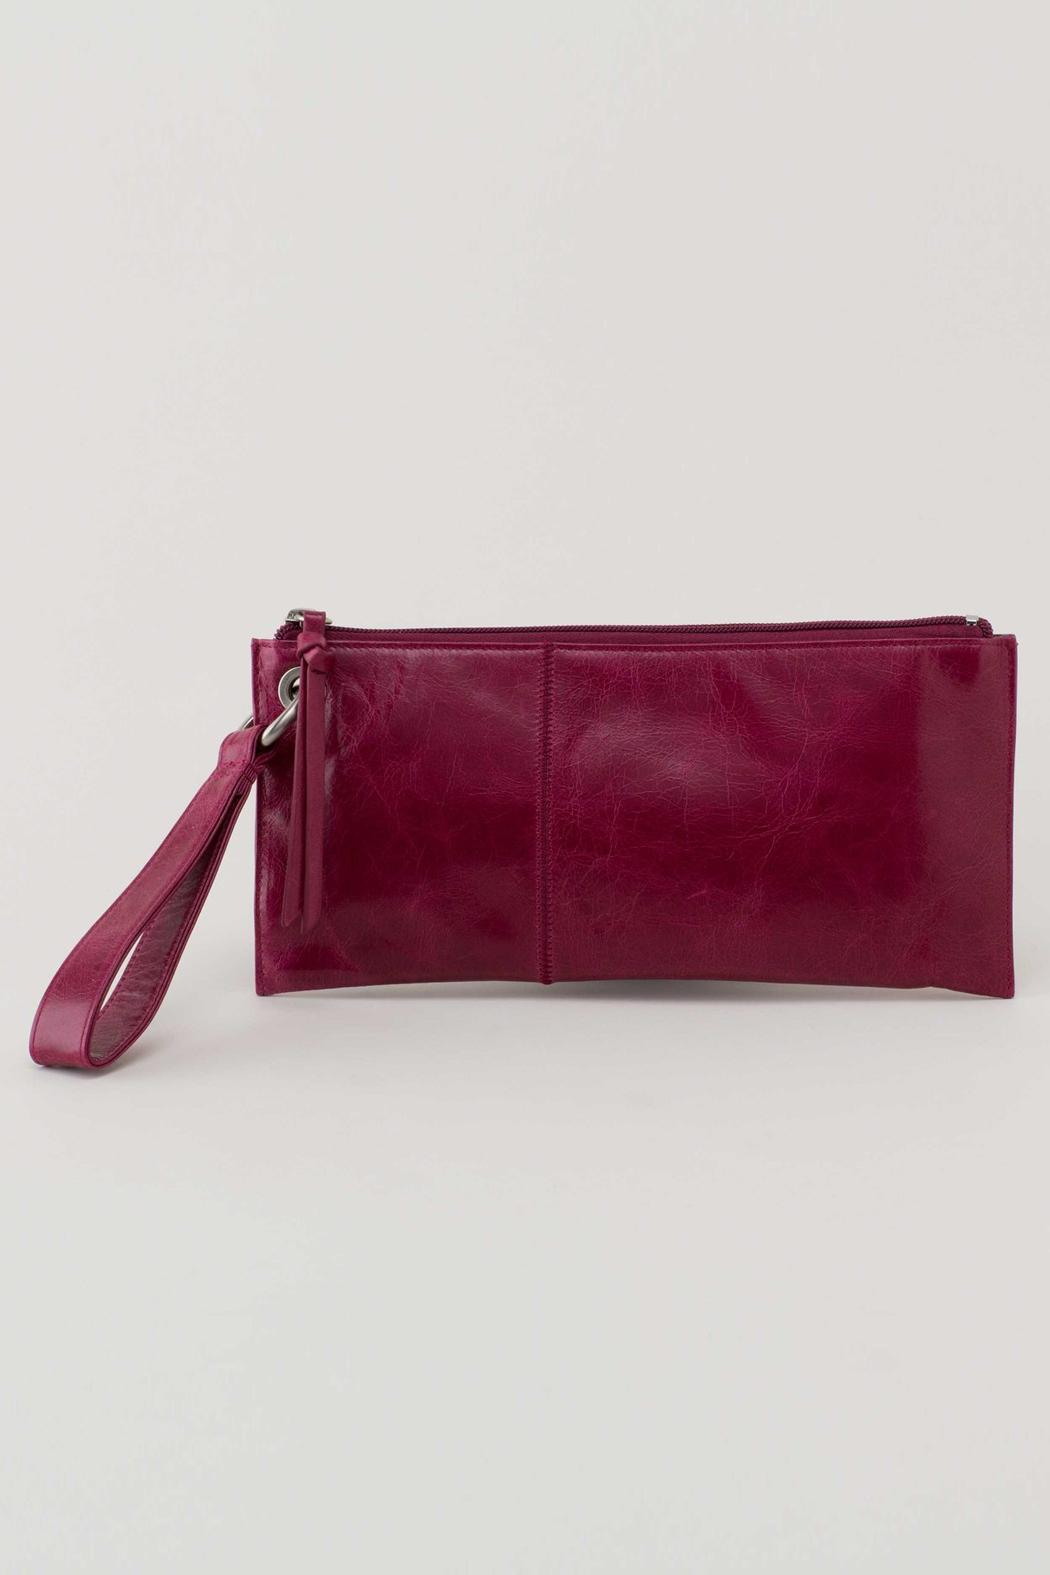 VIDA Statement Clutch - cold clutch 1 by VIDA t0WfJCpIW